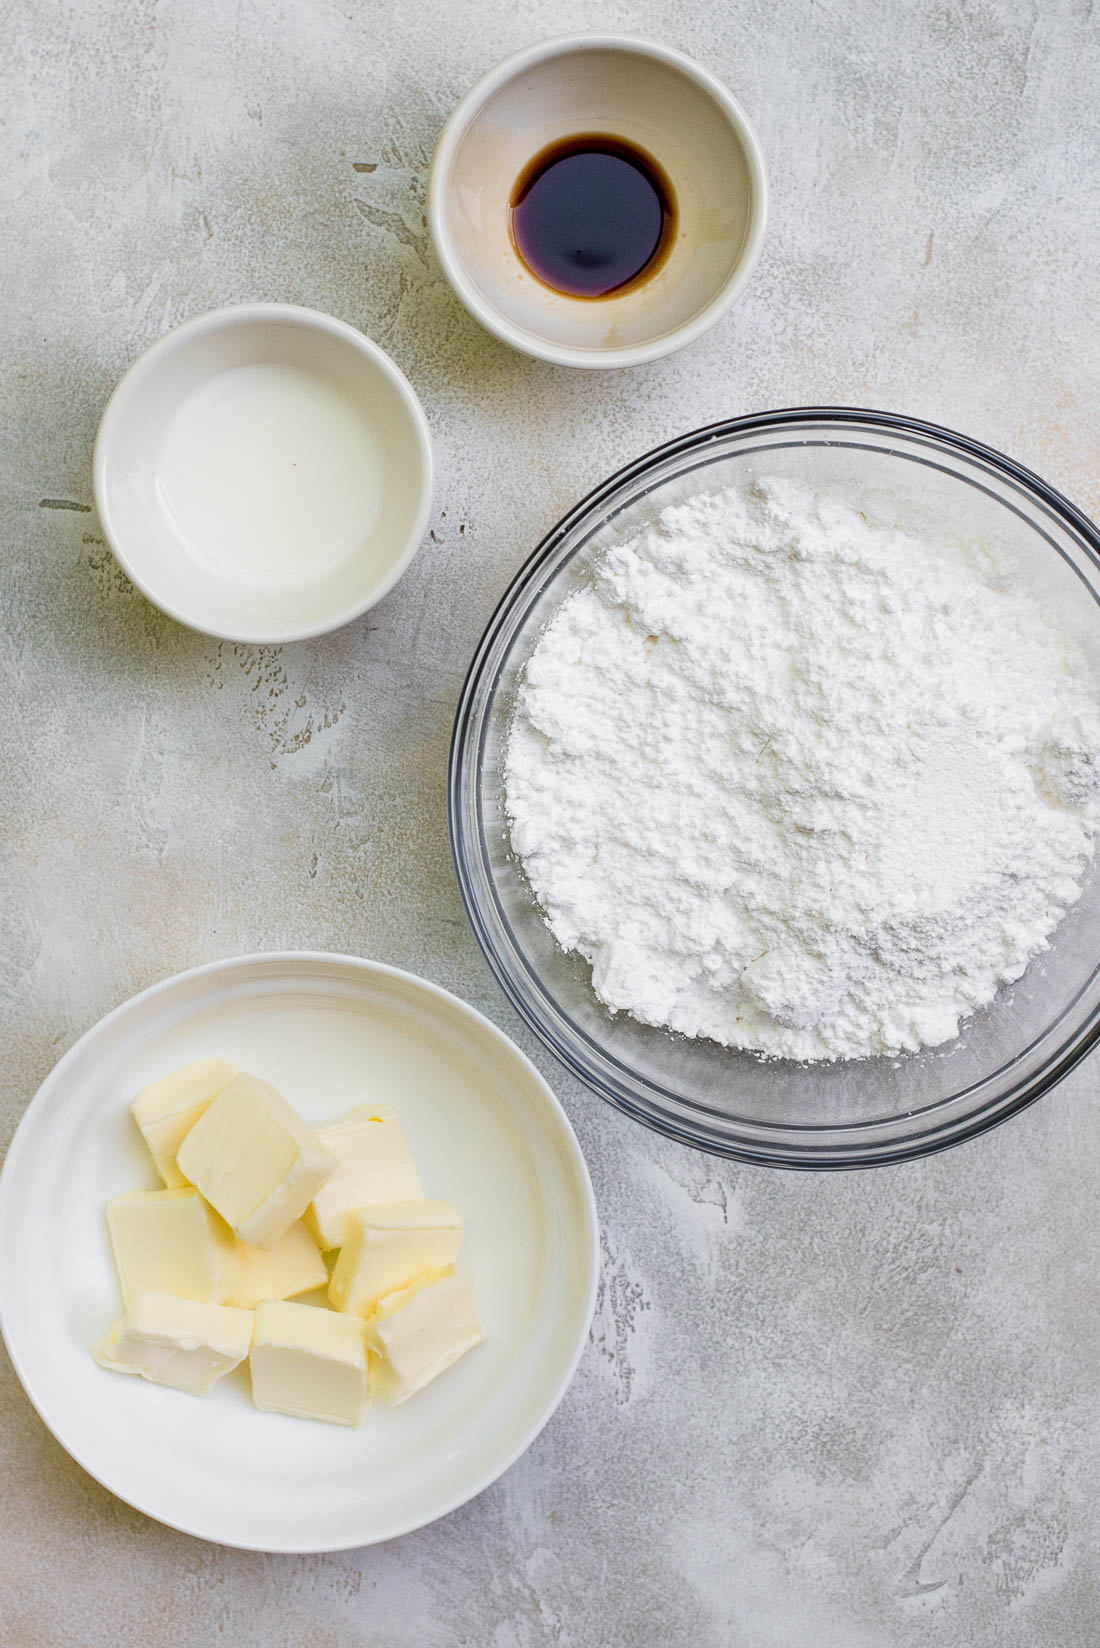 ingredients for vanilla buttercream frosting